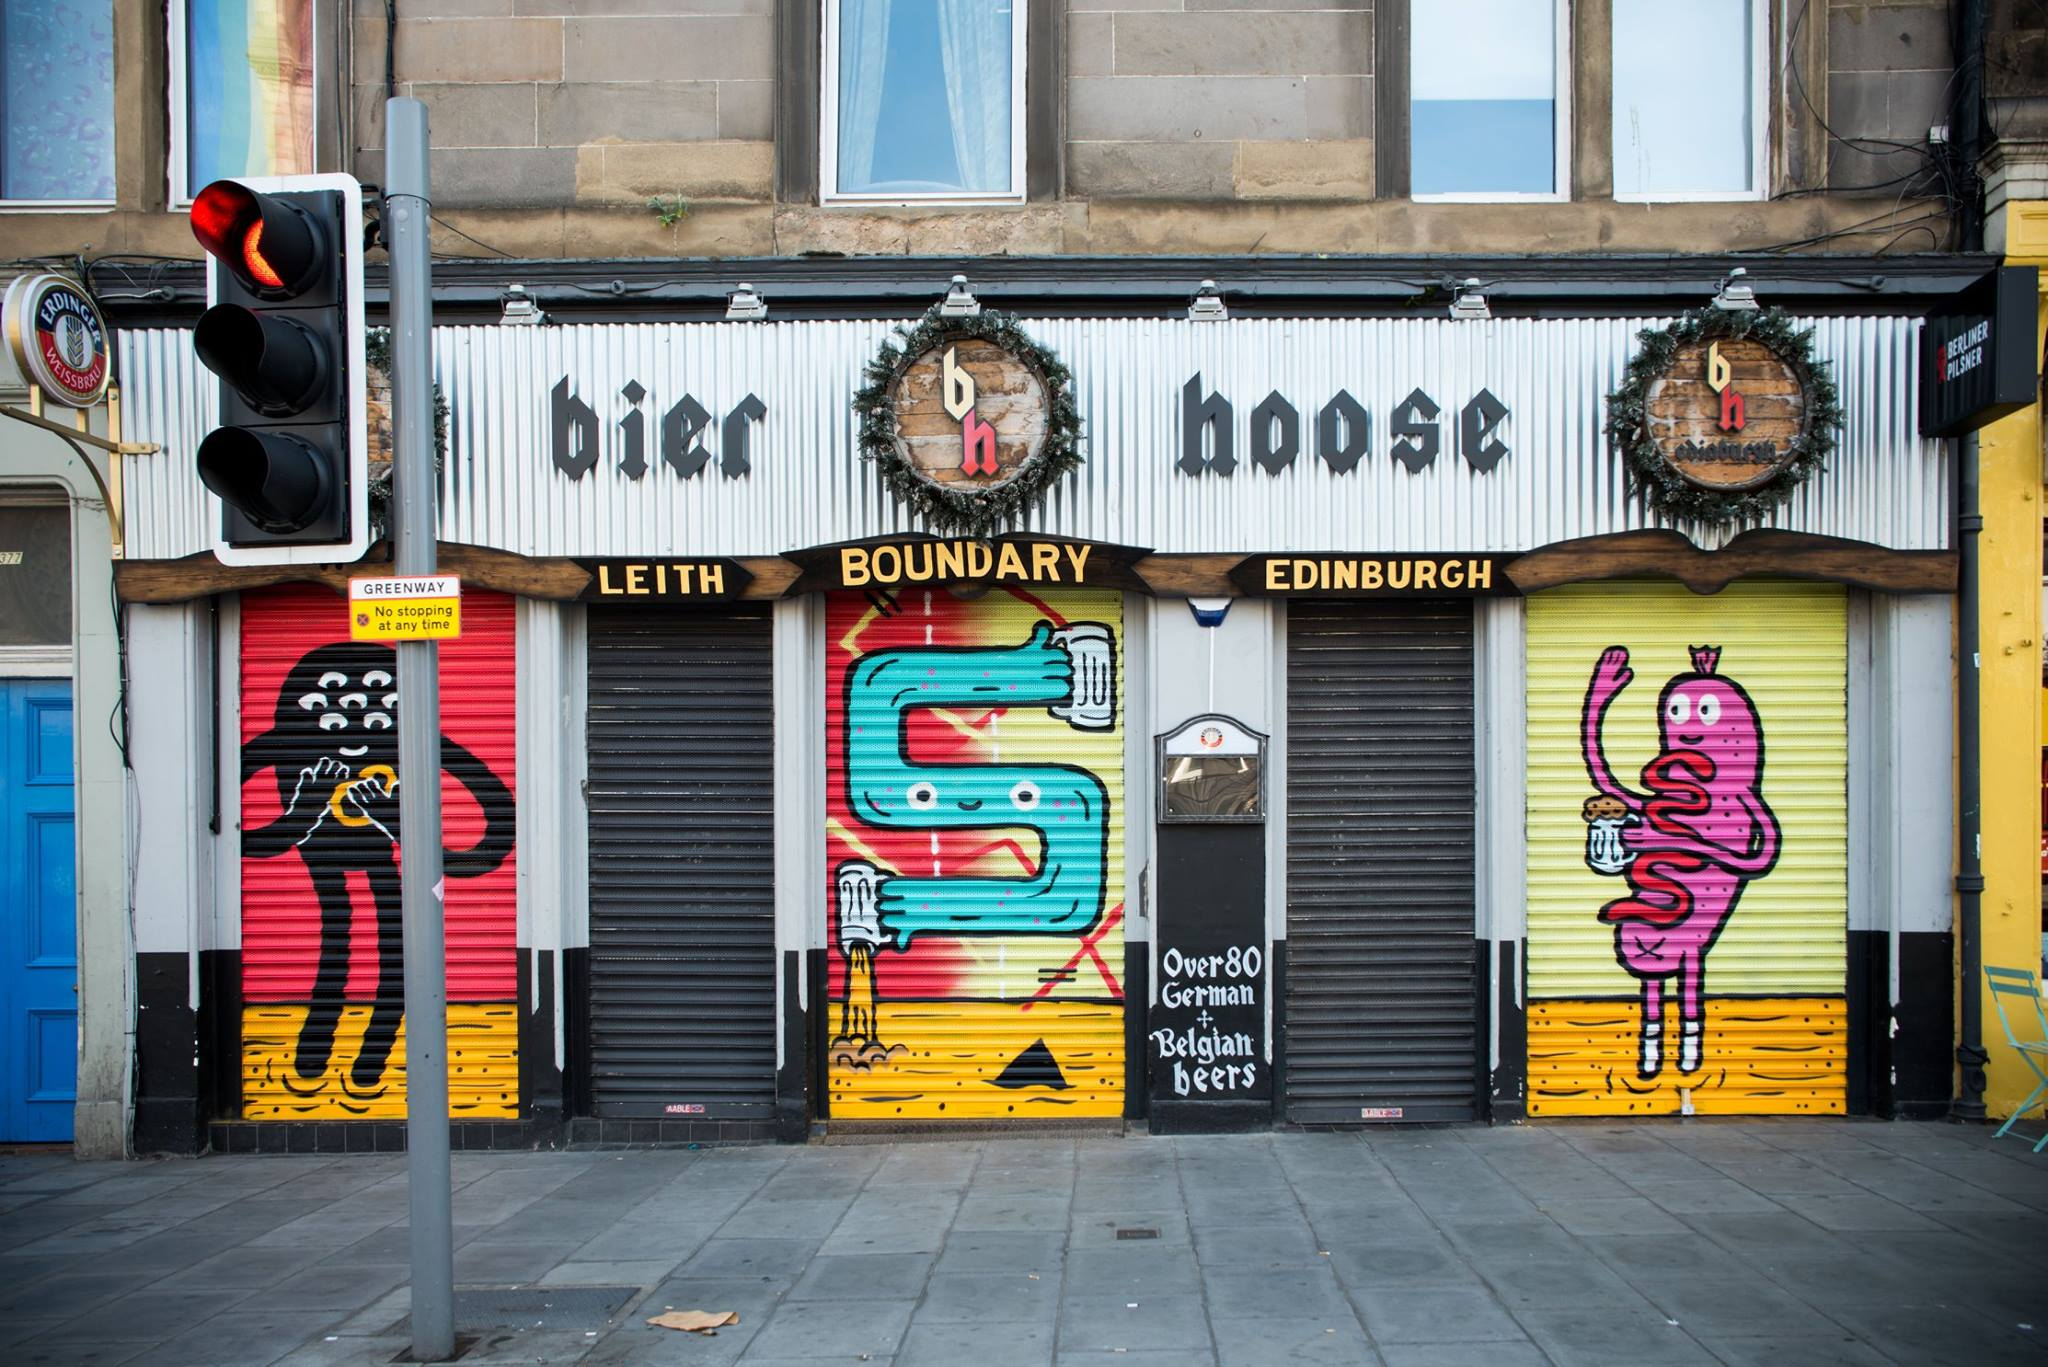 Colourful art on the shutters of the Bier Hoose pub